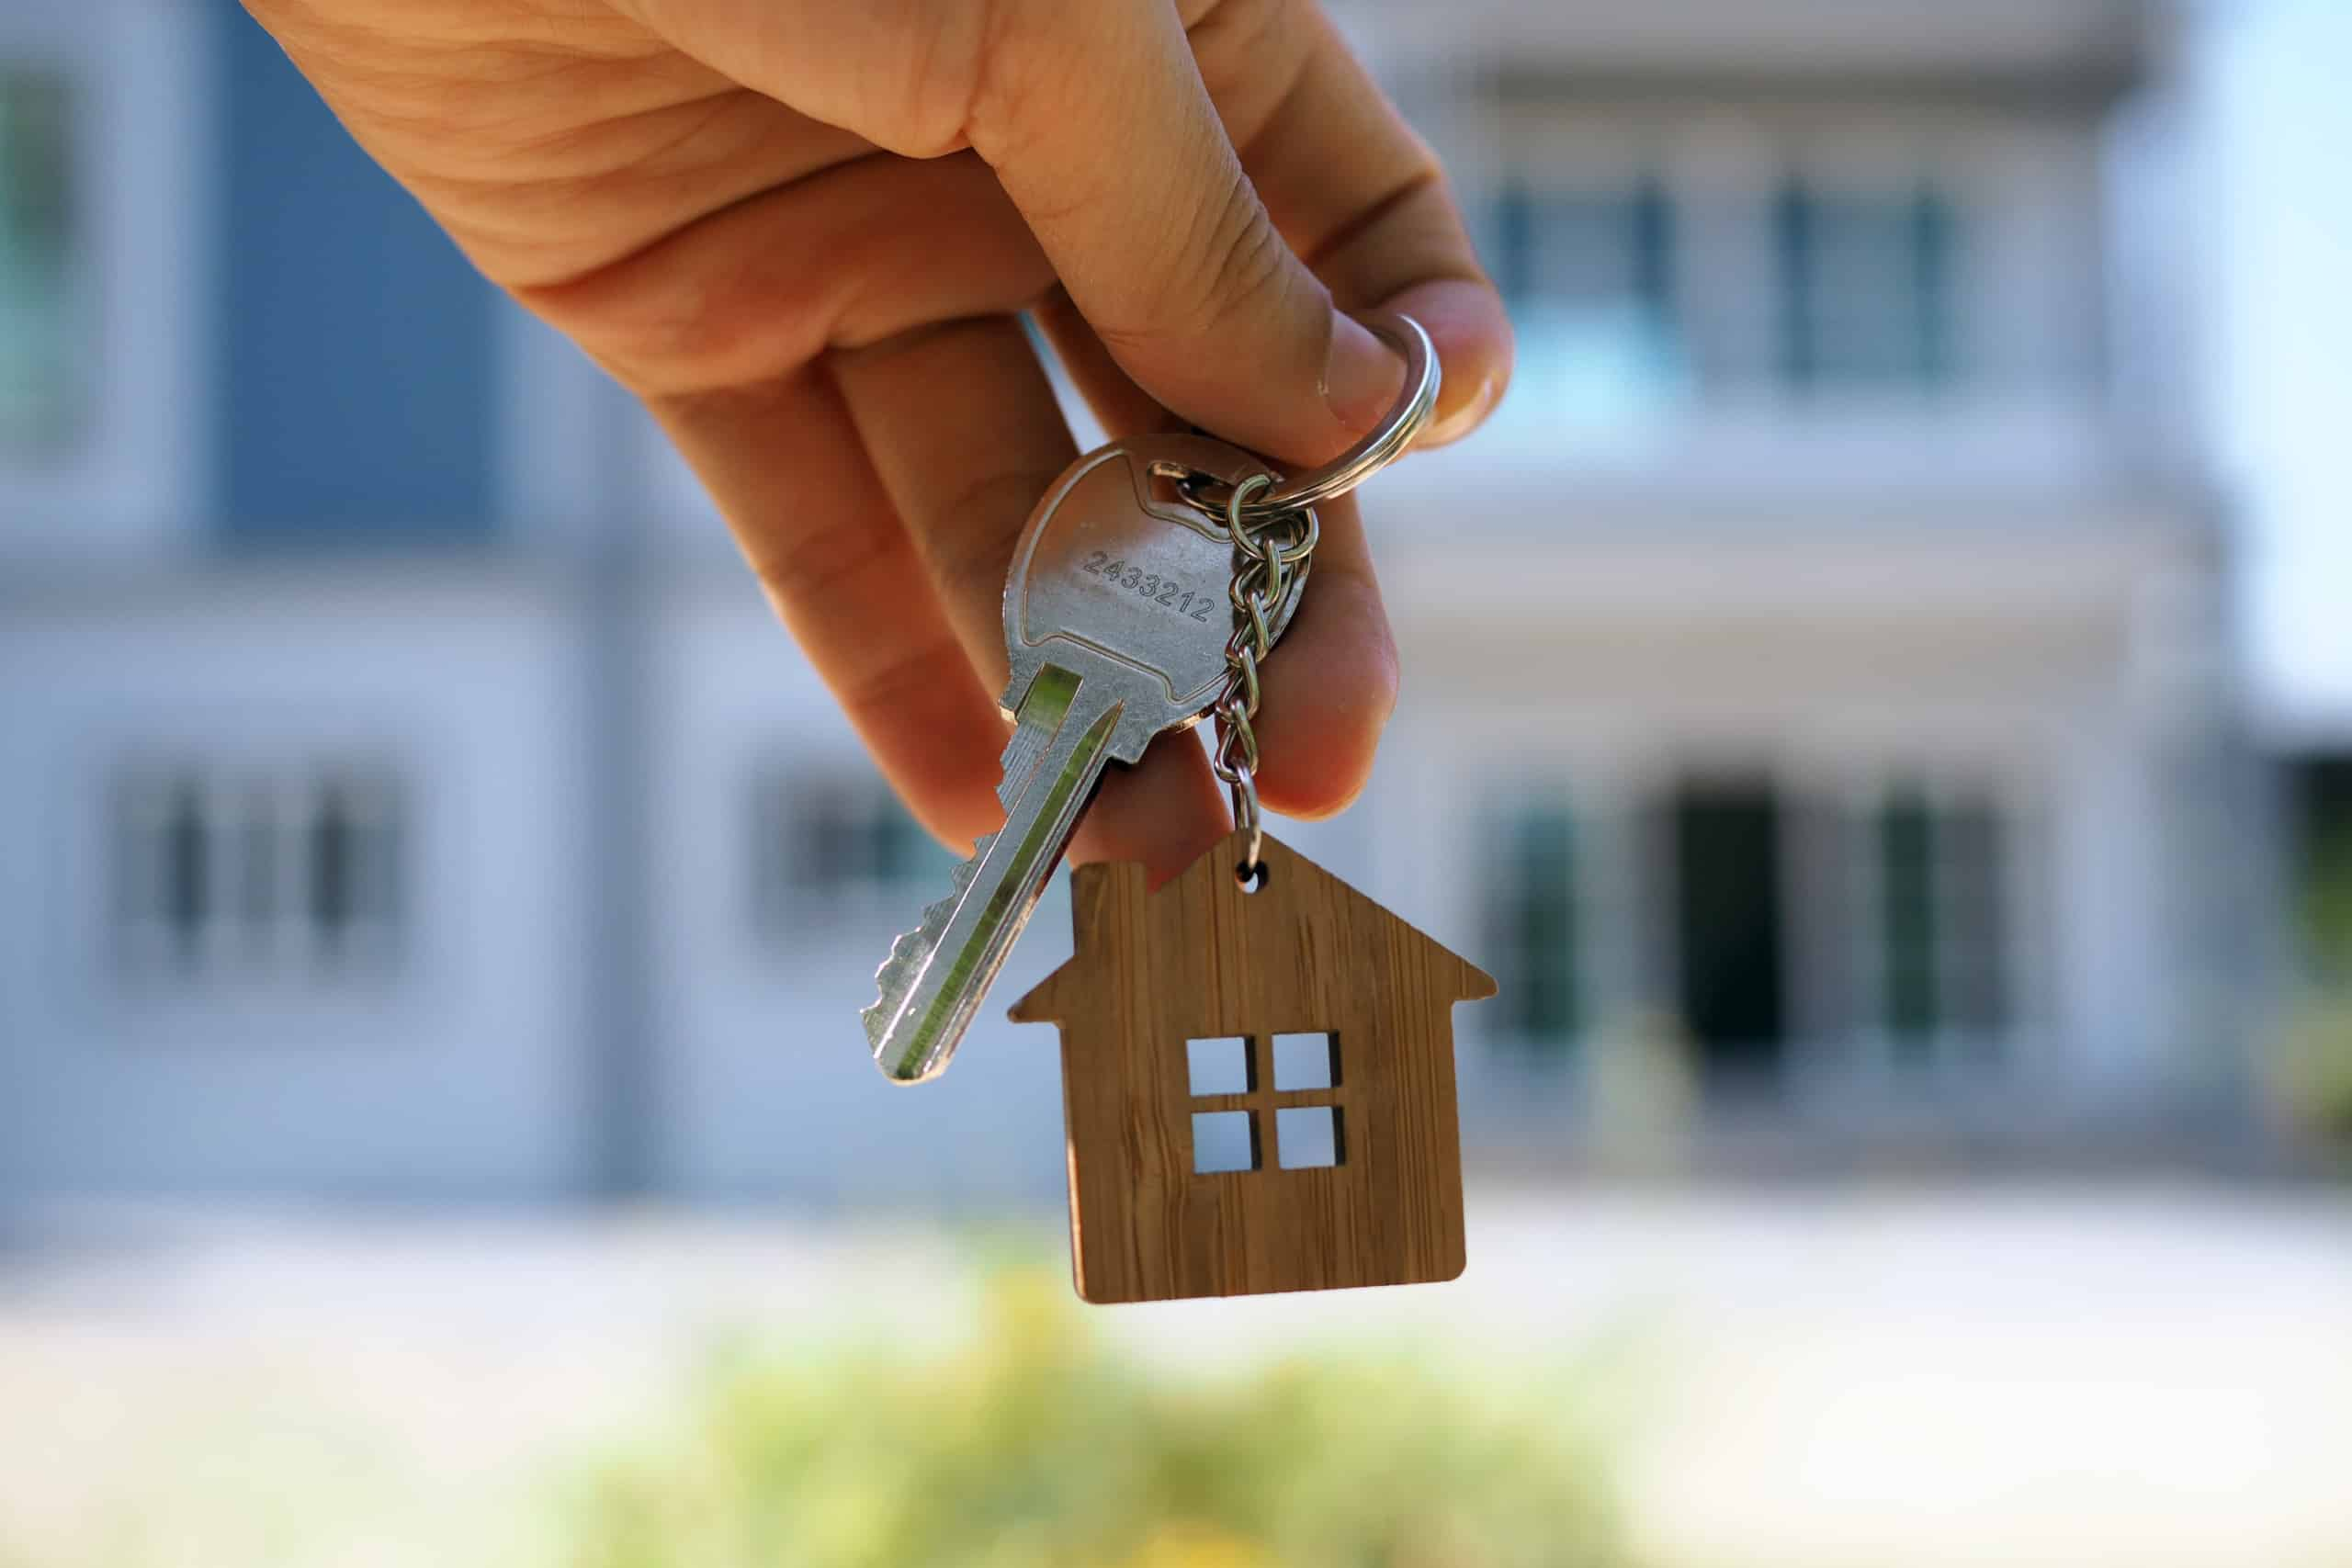 Landlords Master Key Systems